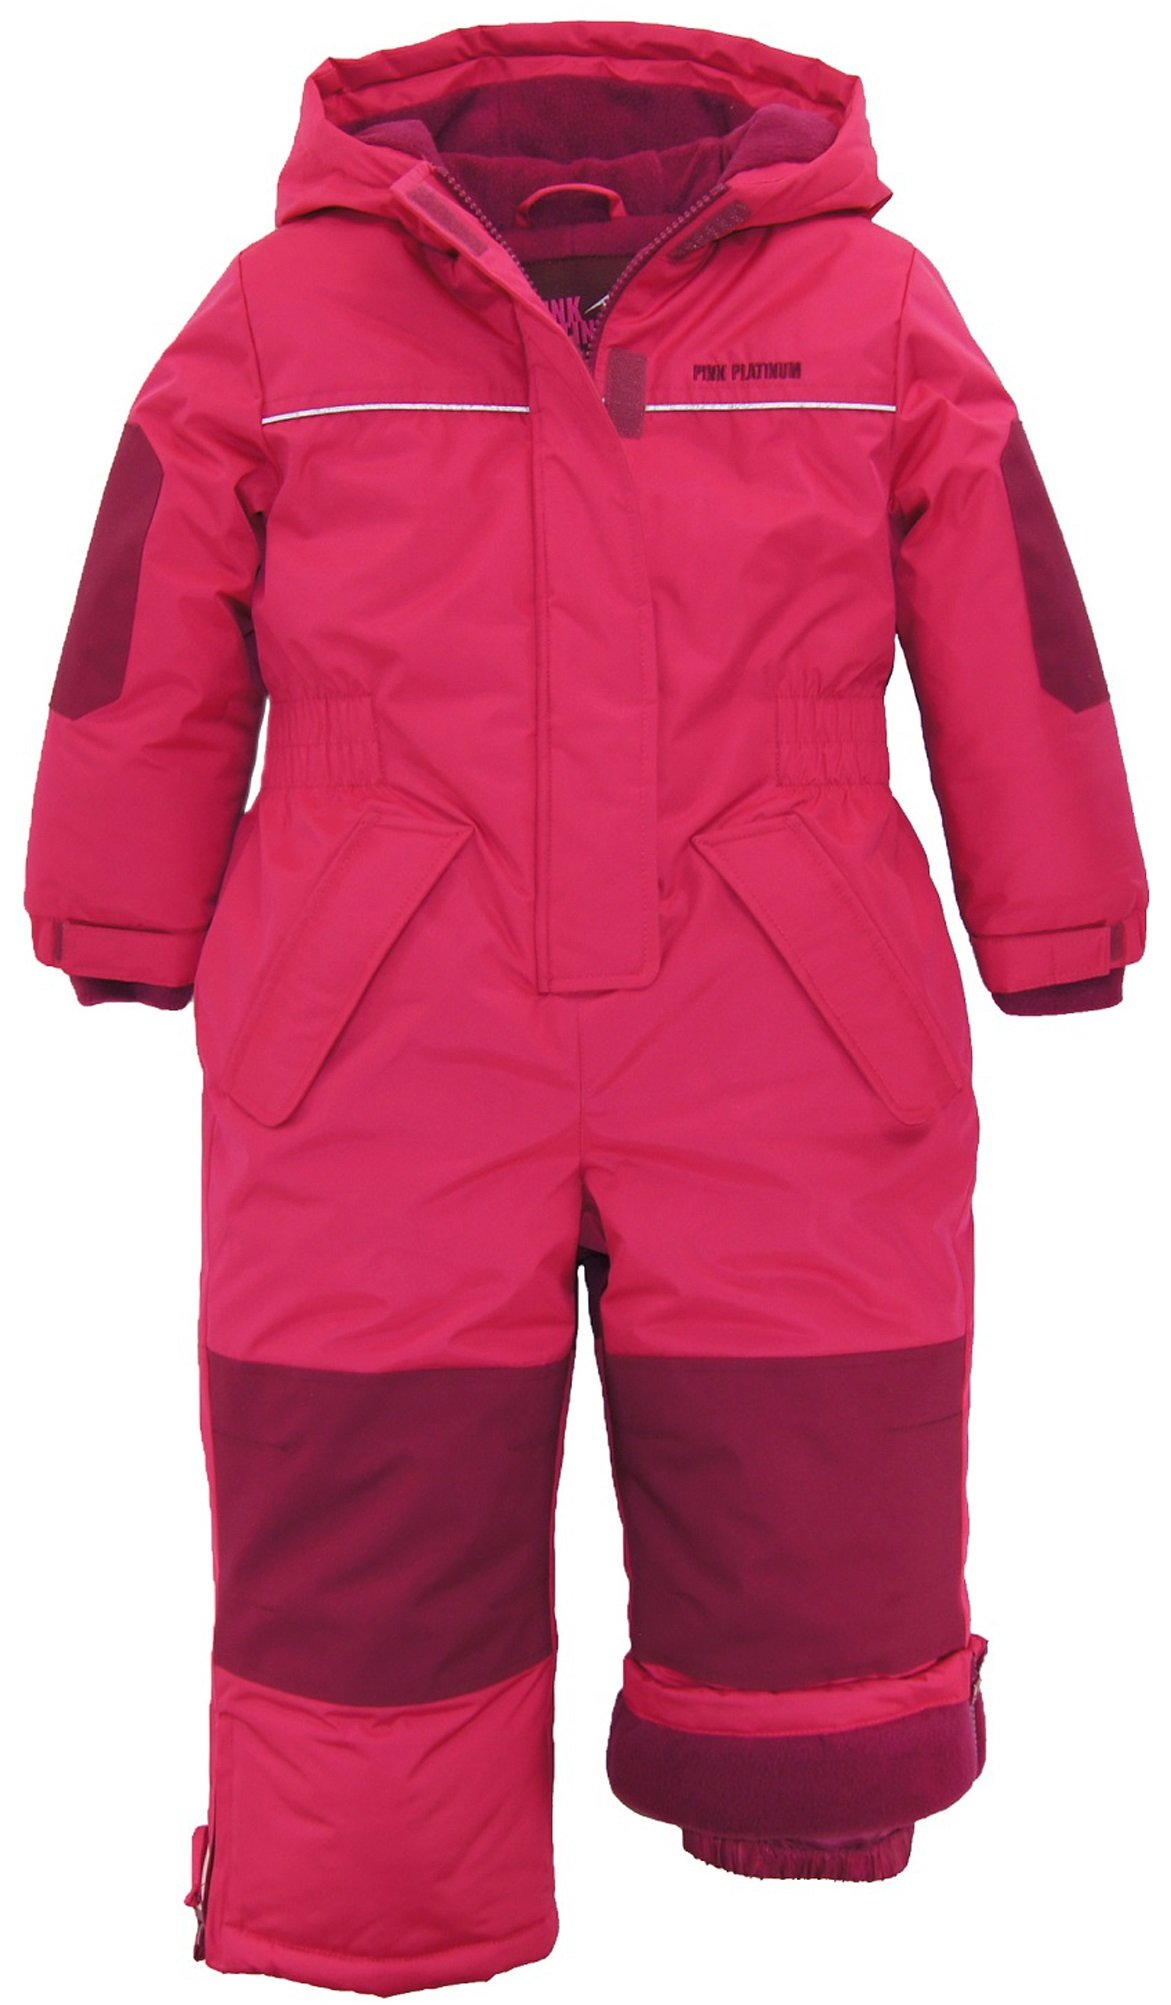 Pink Platinum Snow Mobile For Girls, Babies & Toddlers - 1-Piece Snowsuit by Pink Platinum (Image #4)